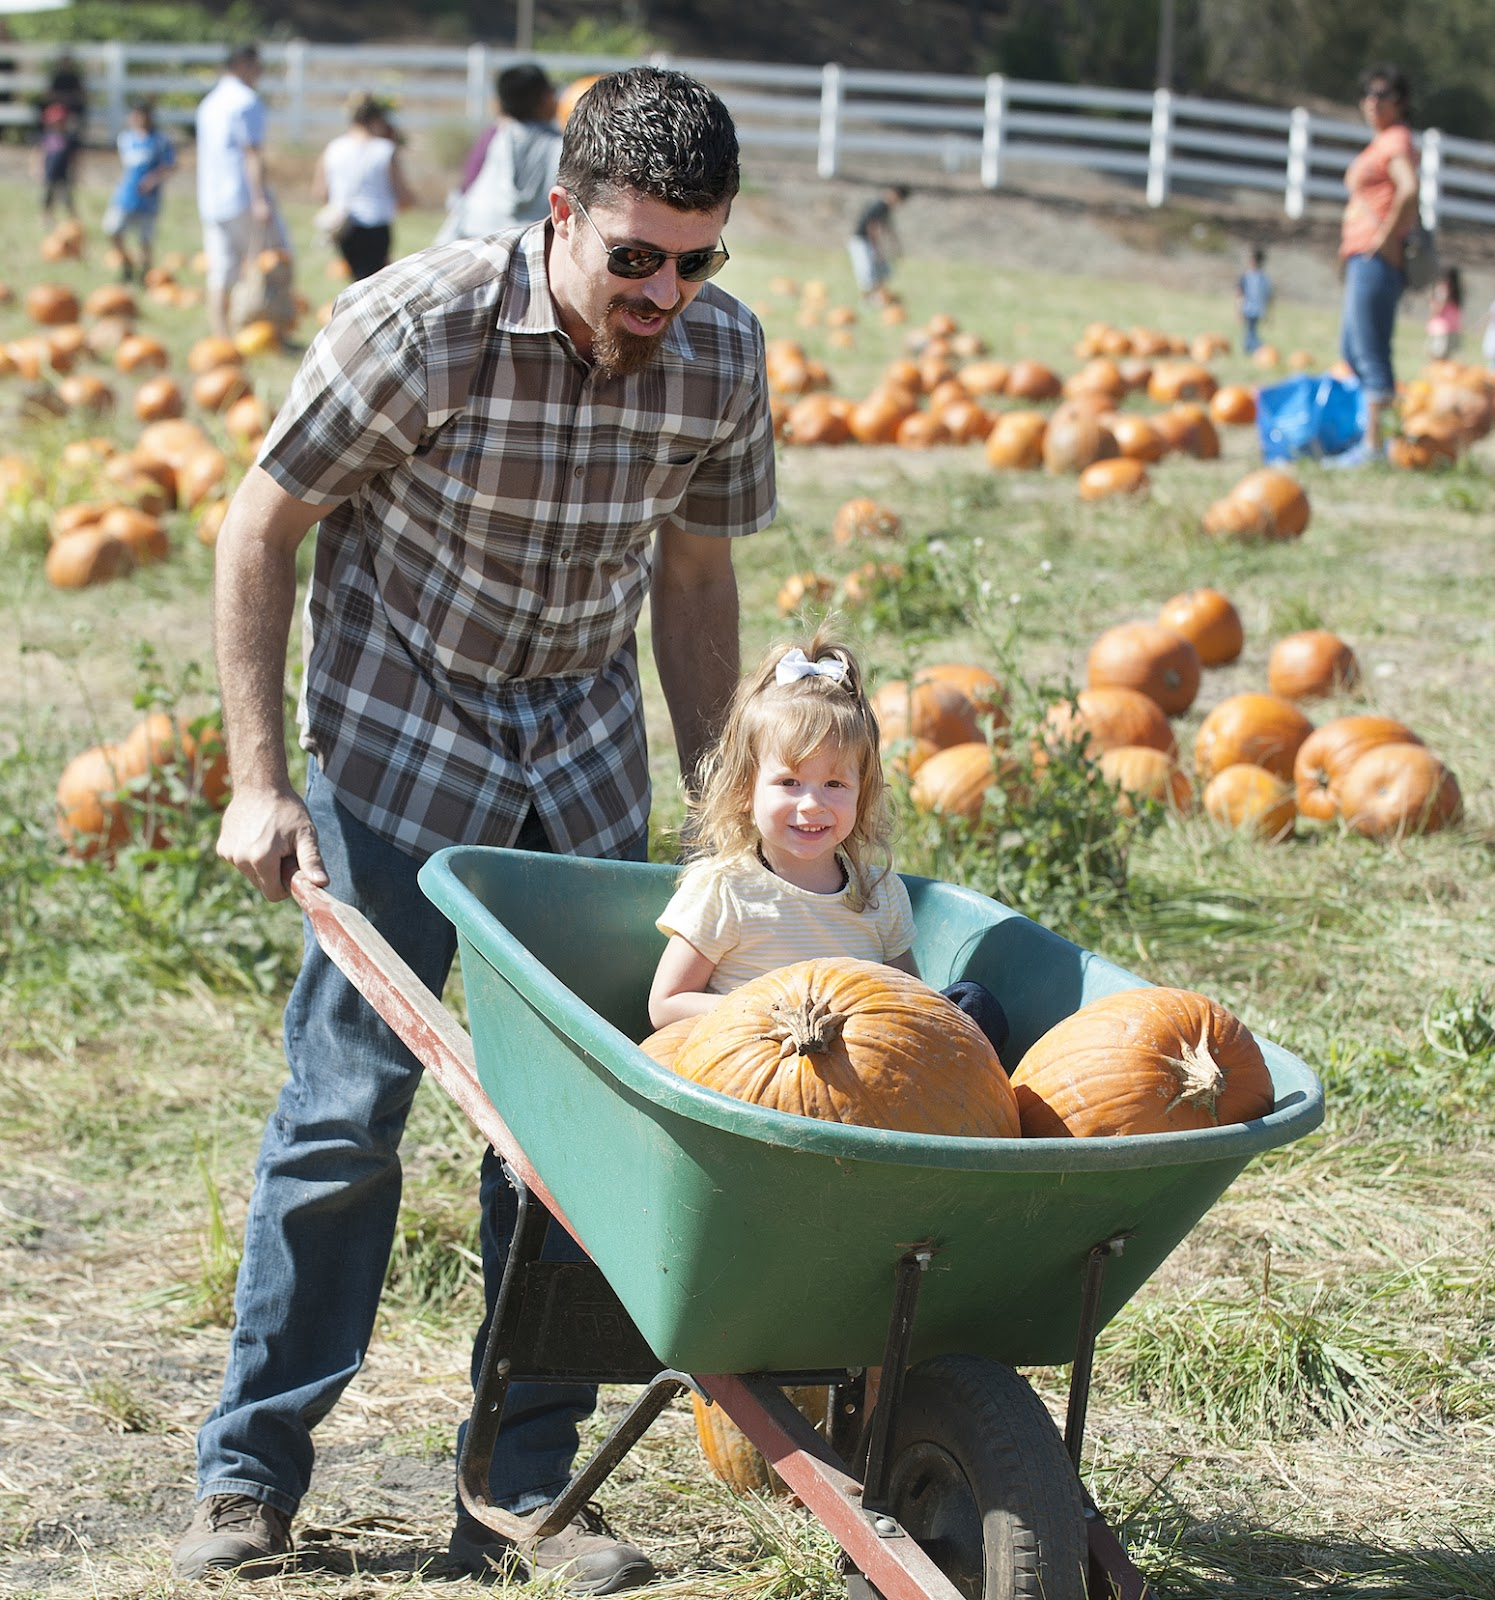 Man pushing little girl and pumpkins in a barrel